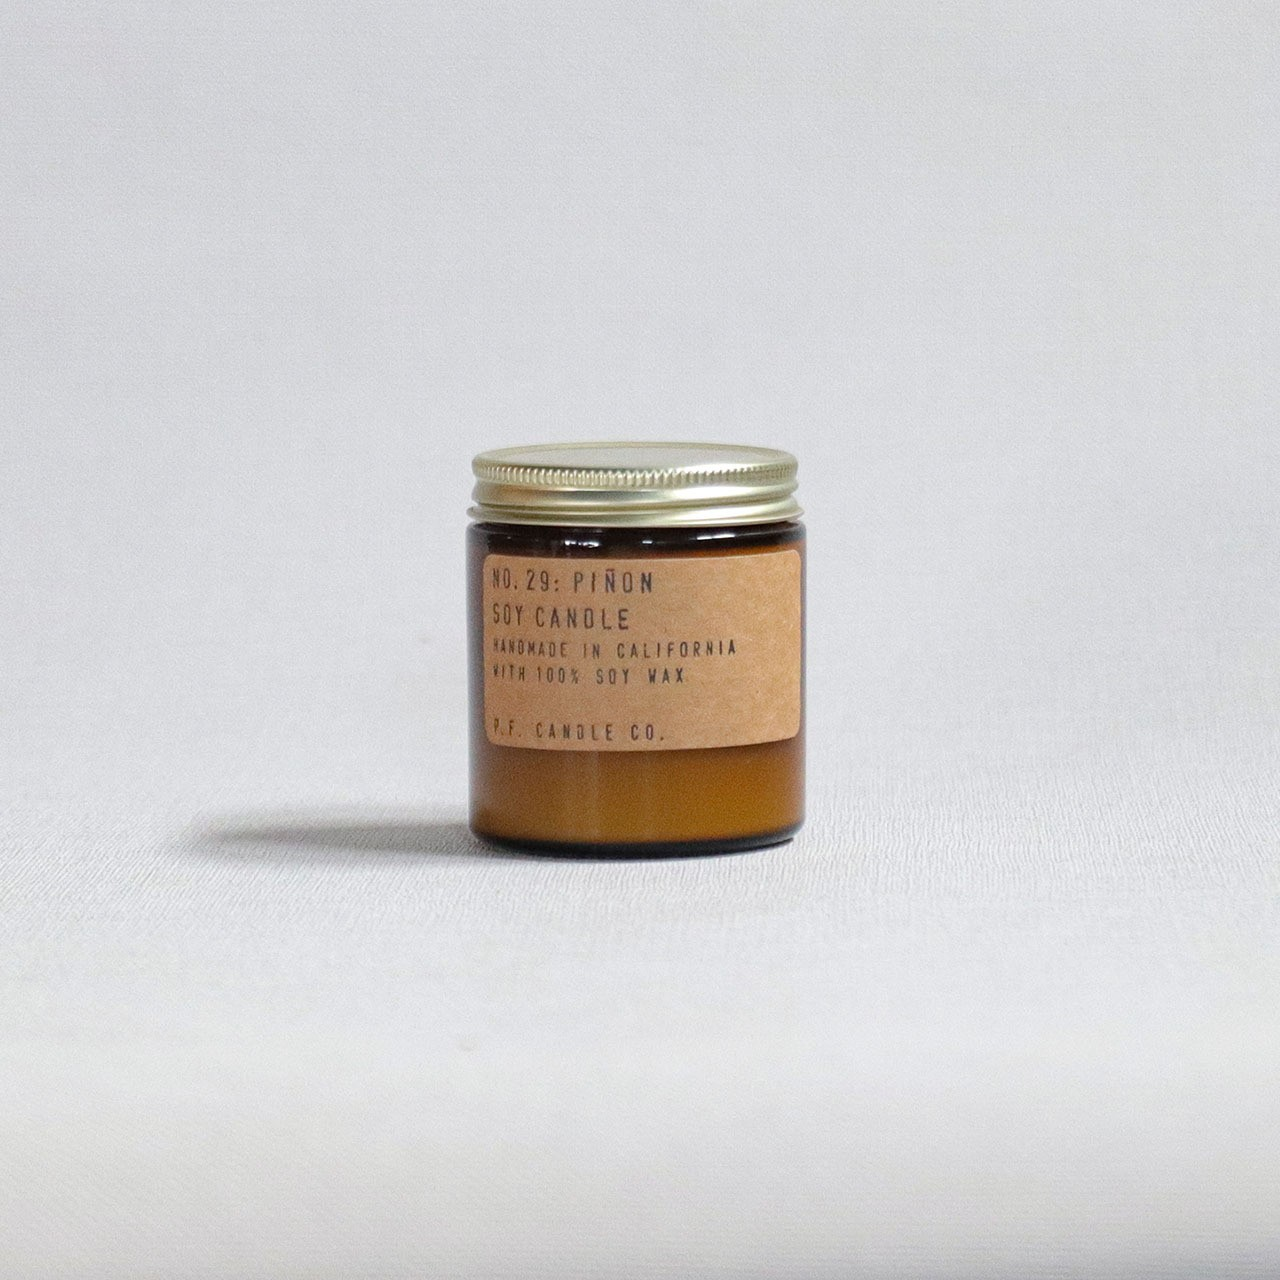 P.F.Candle Co. 3.5oz Soy Wax Candle